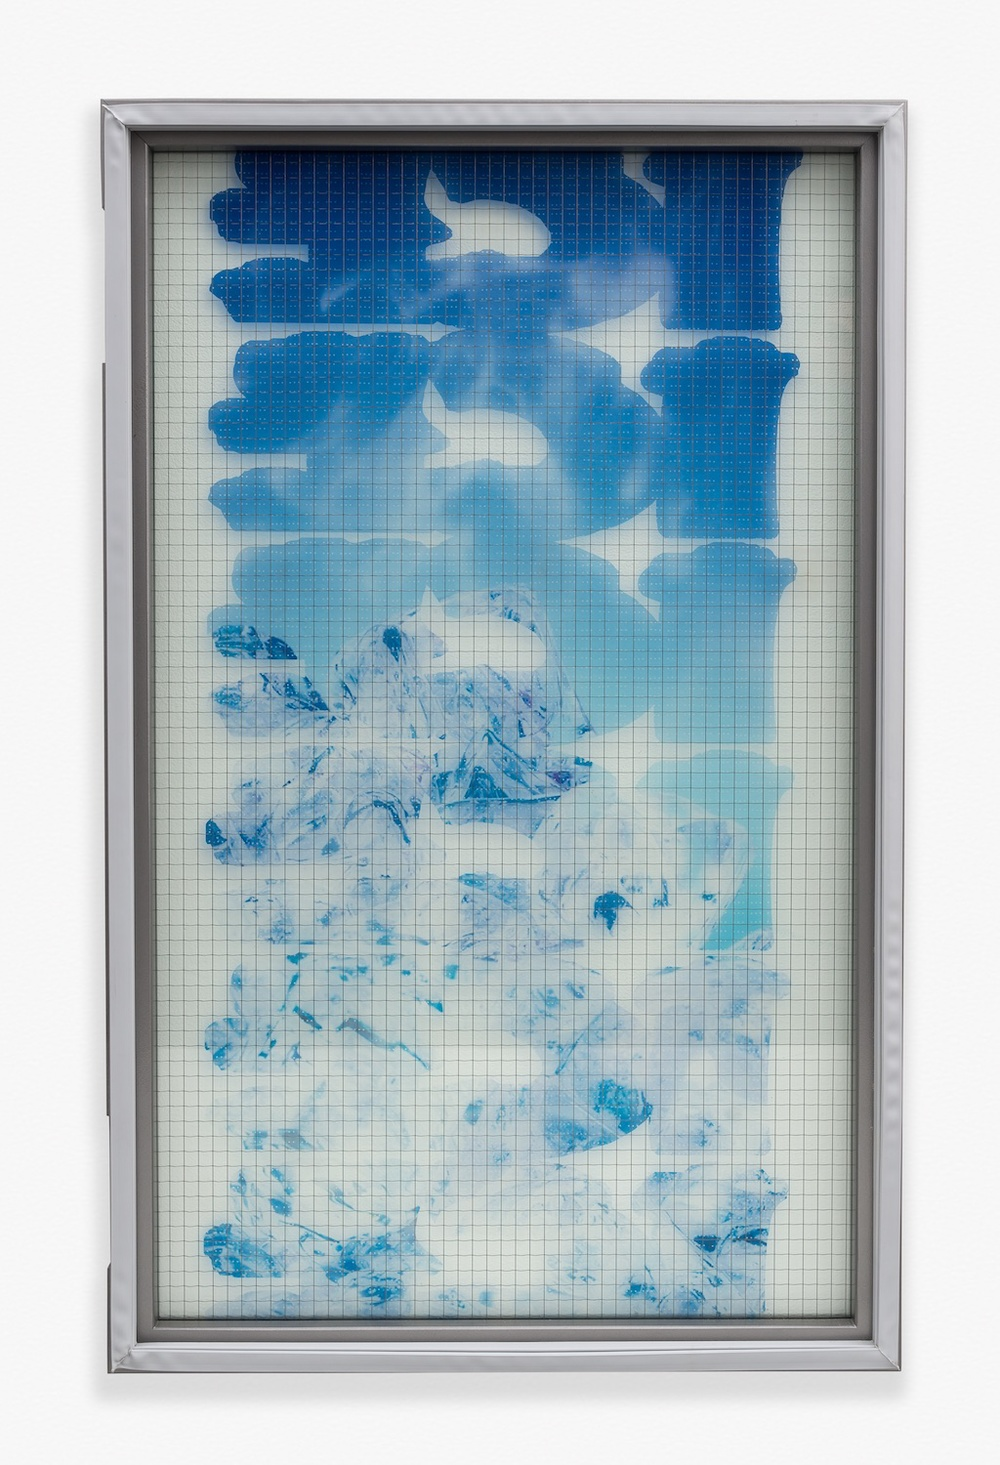 "Chris Bradley Freezer Door (ICEICEICE) 2014 Wire glass, printed clear film, wood, rubber gasket 44"" x 27"" x 2"" CB102"